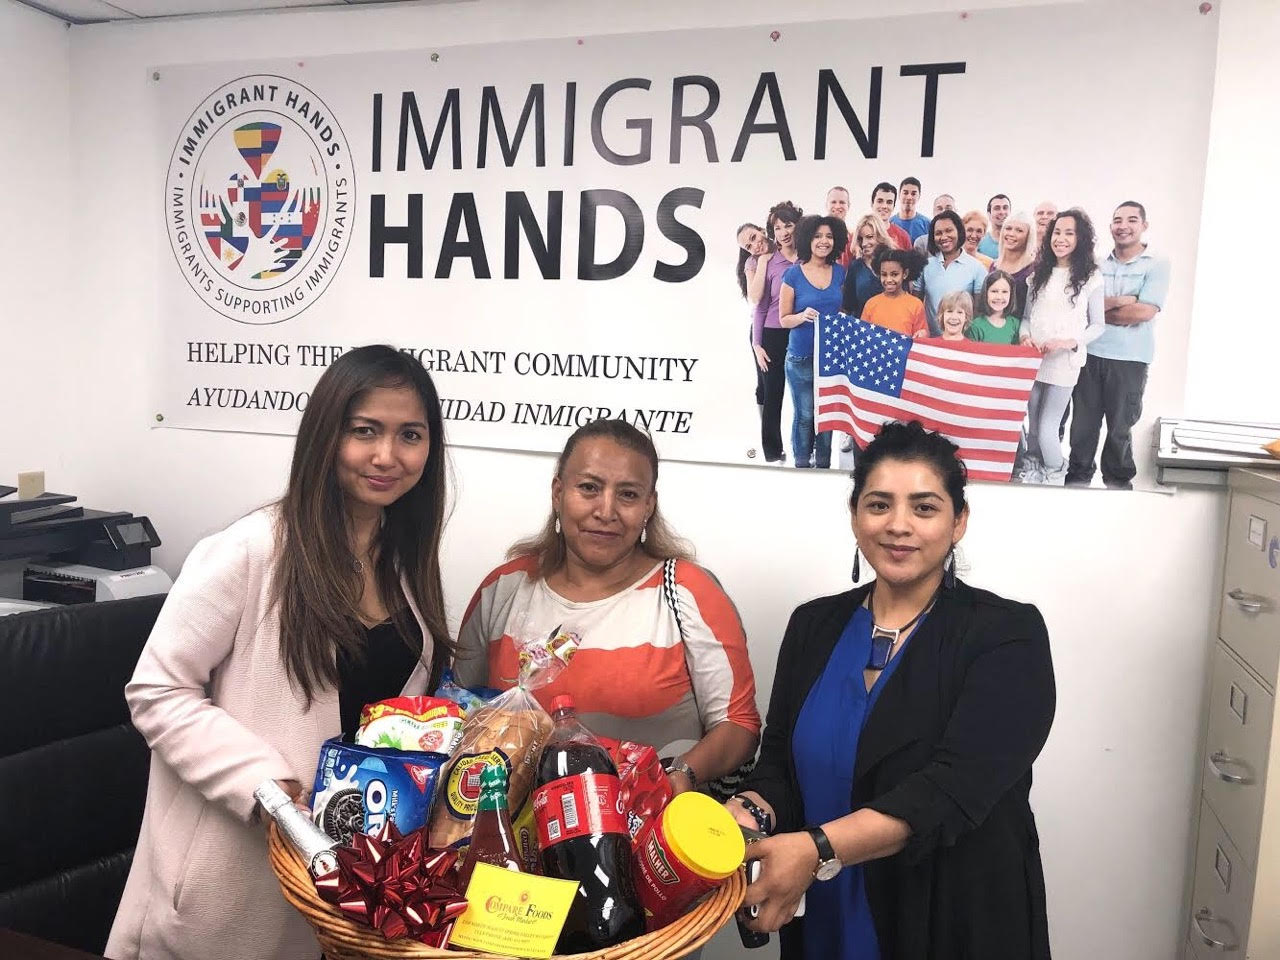 St. Paul's Episcopal Church of Spring Valley, NY and Immigrant Hands, Inc. Collaborate to Help Families in Need.